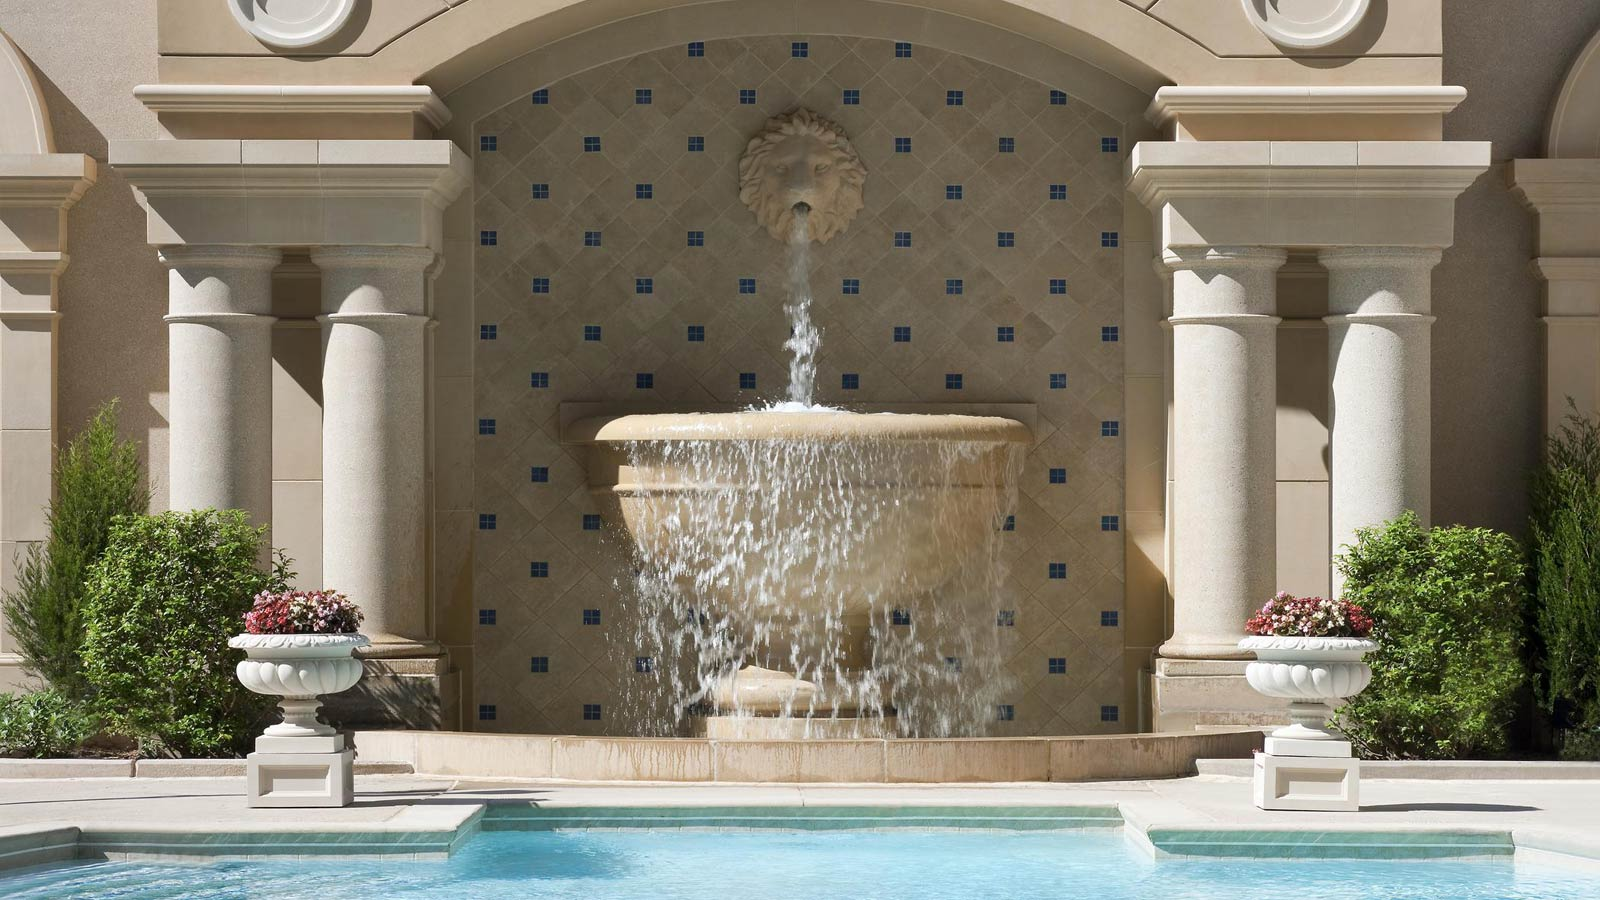 The St. Regis Atlanta - Pool Fountain